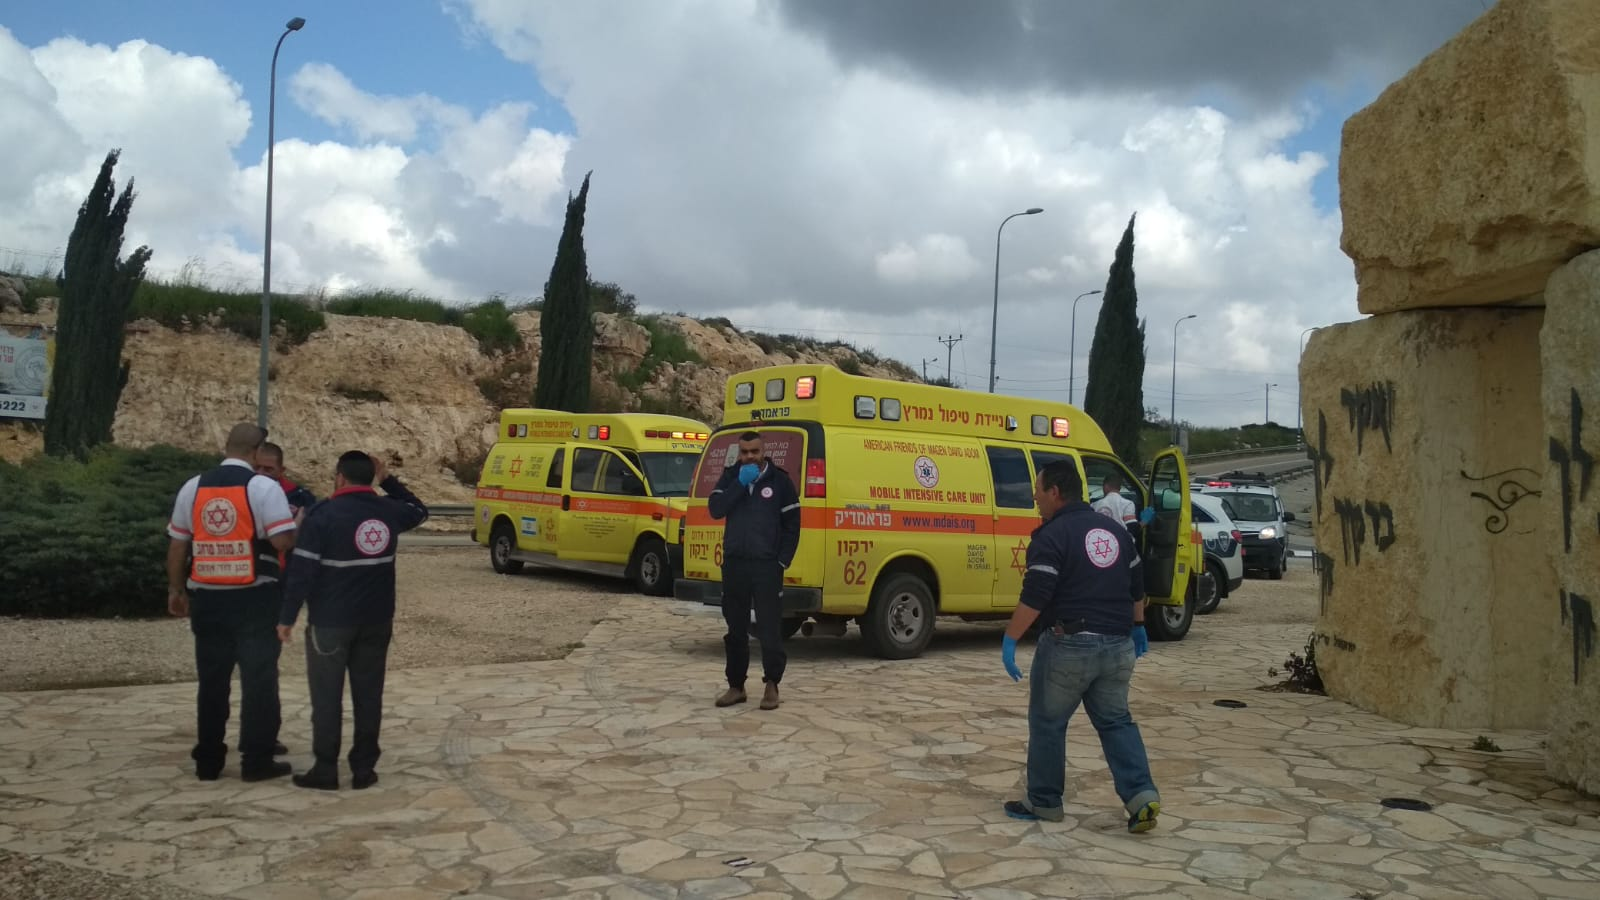 Multiple Terror Attacks near Ariel, Killed and Wounded